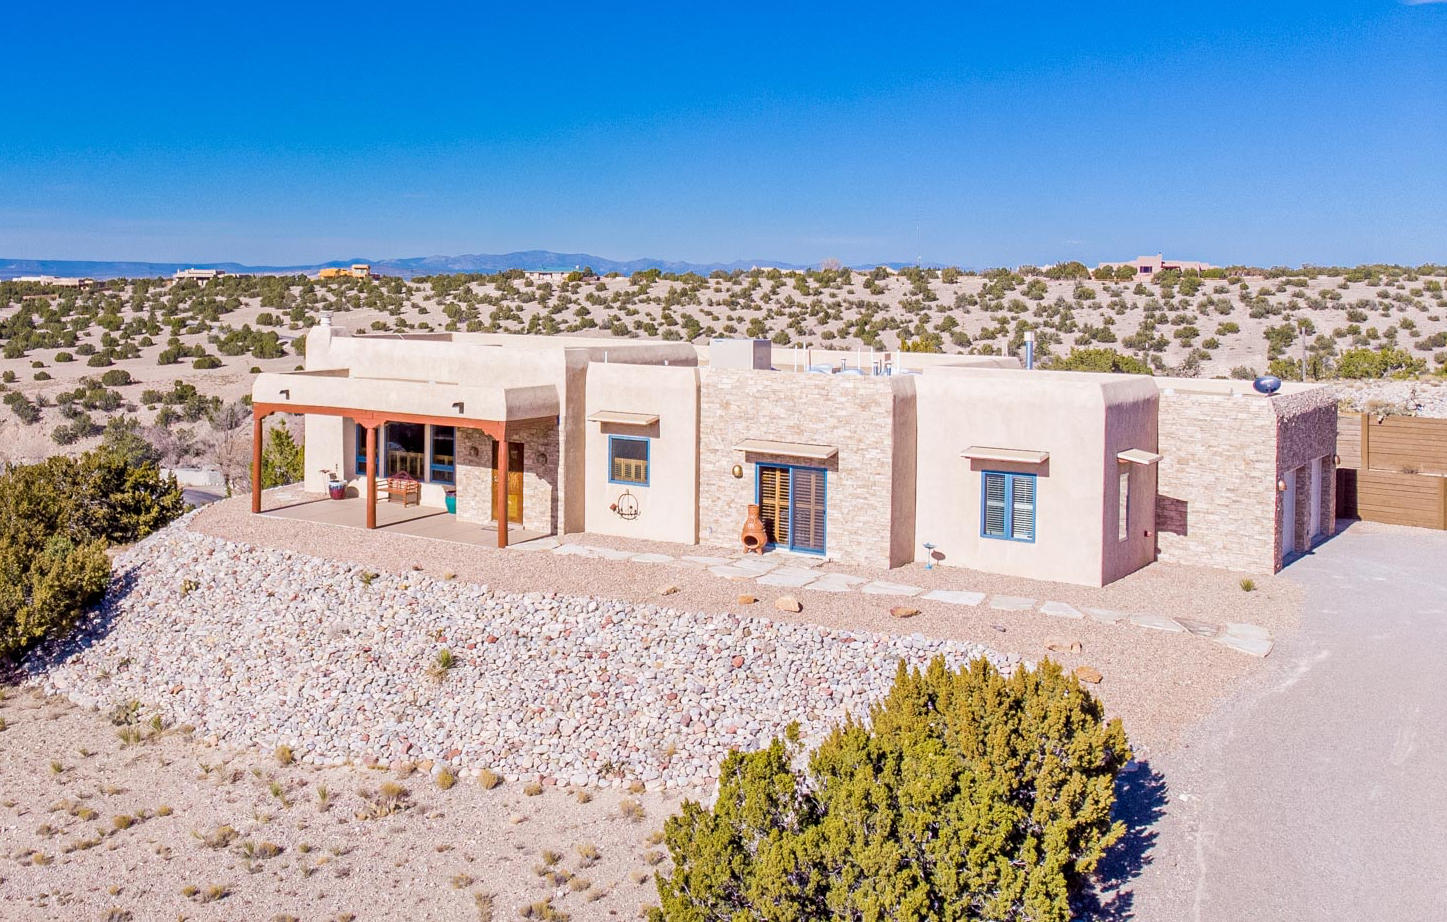 Exceptional beauty Placitas home! Panoramic views!  Gourmet kitchen of your dreams with updated appliances, beautiful custom cabinets, prep sink and double ovens. Master bedroom has his and hers vanities, jetted tub and separate Steam shower! This is the home of your dreams with views to die for!